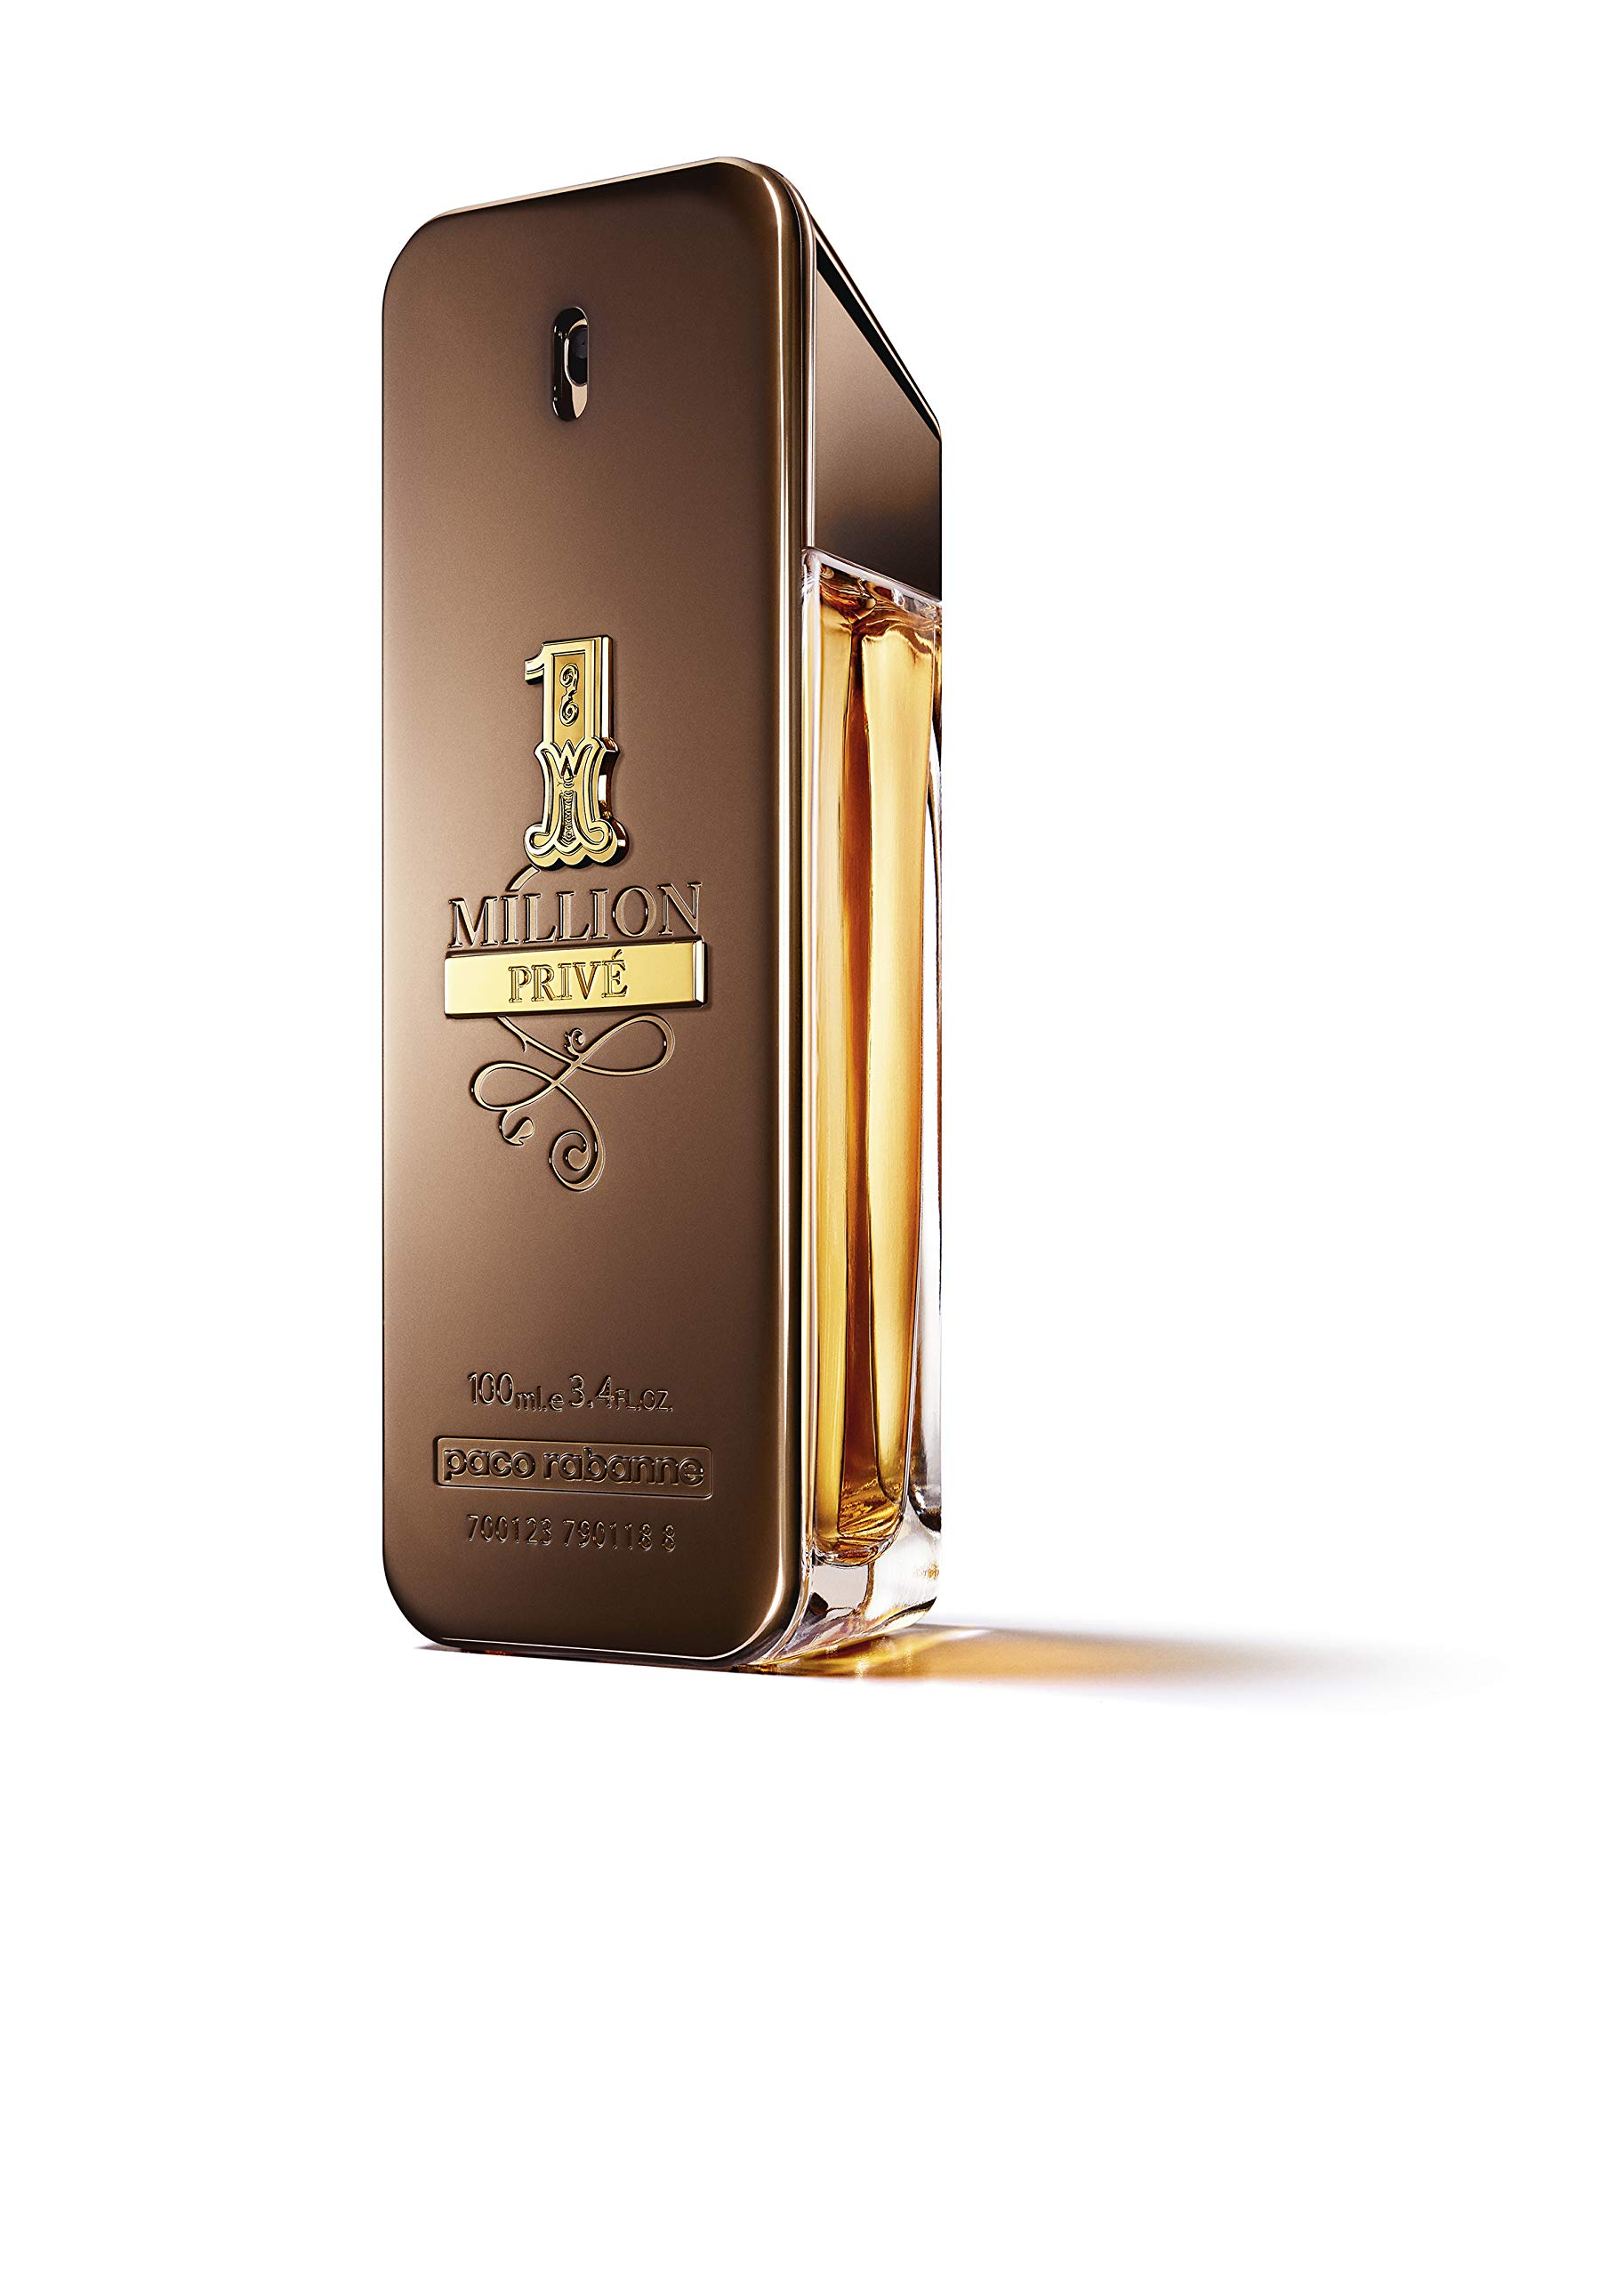 d1bcf57556 Amazon.com   1 Million Lucky by Paco Rabanne Eau de Toilette Spray ...